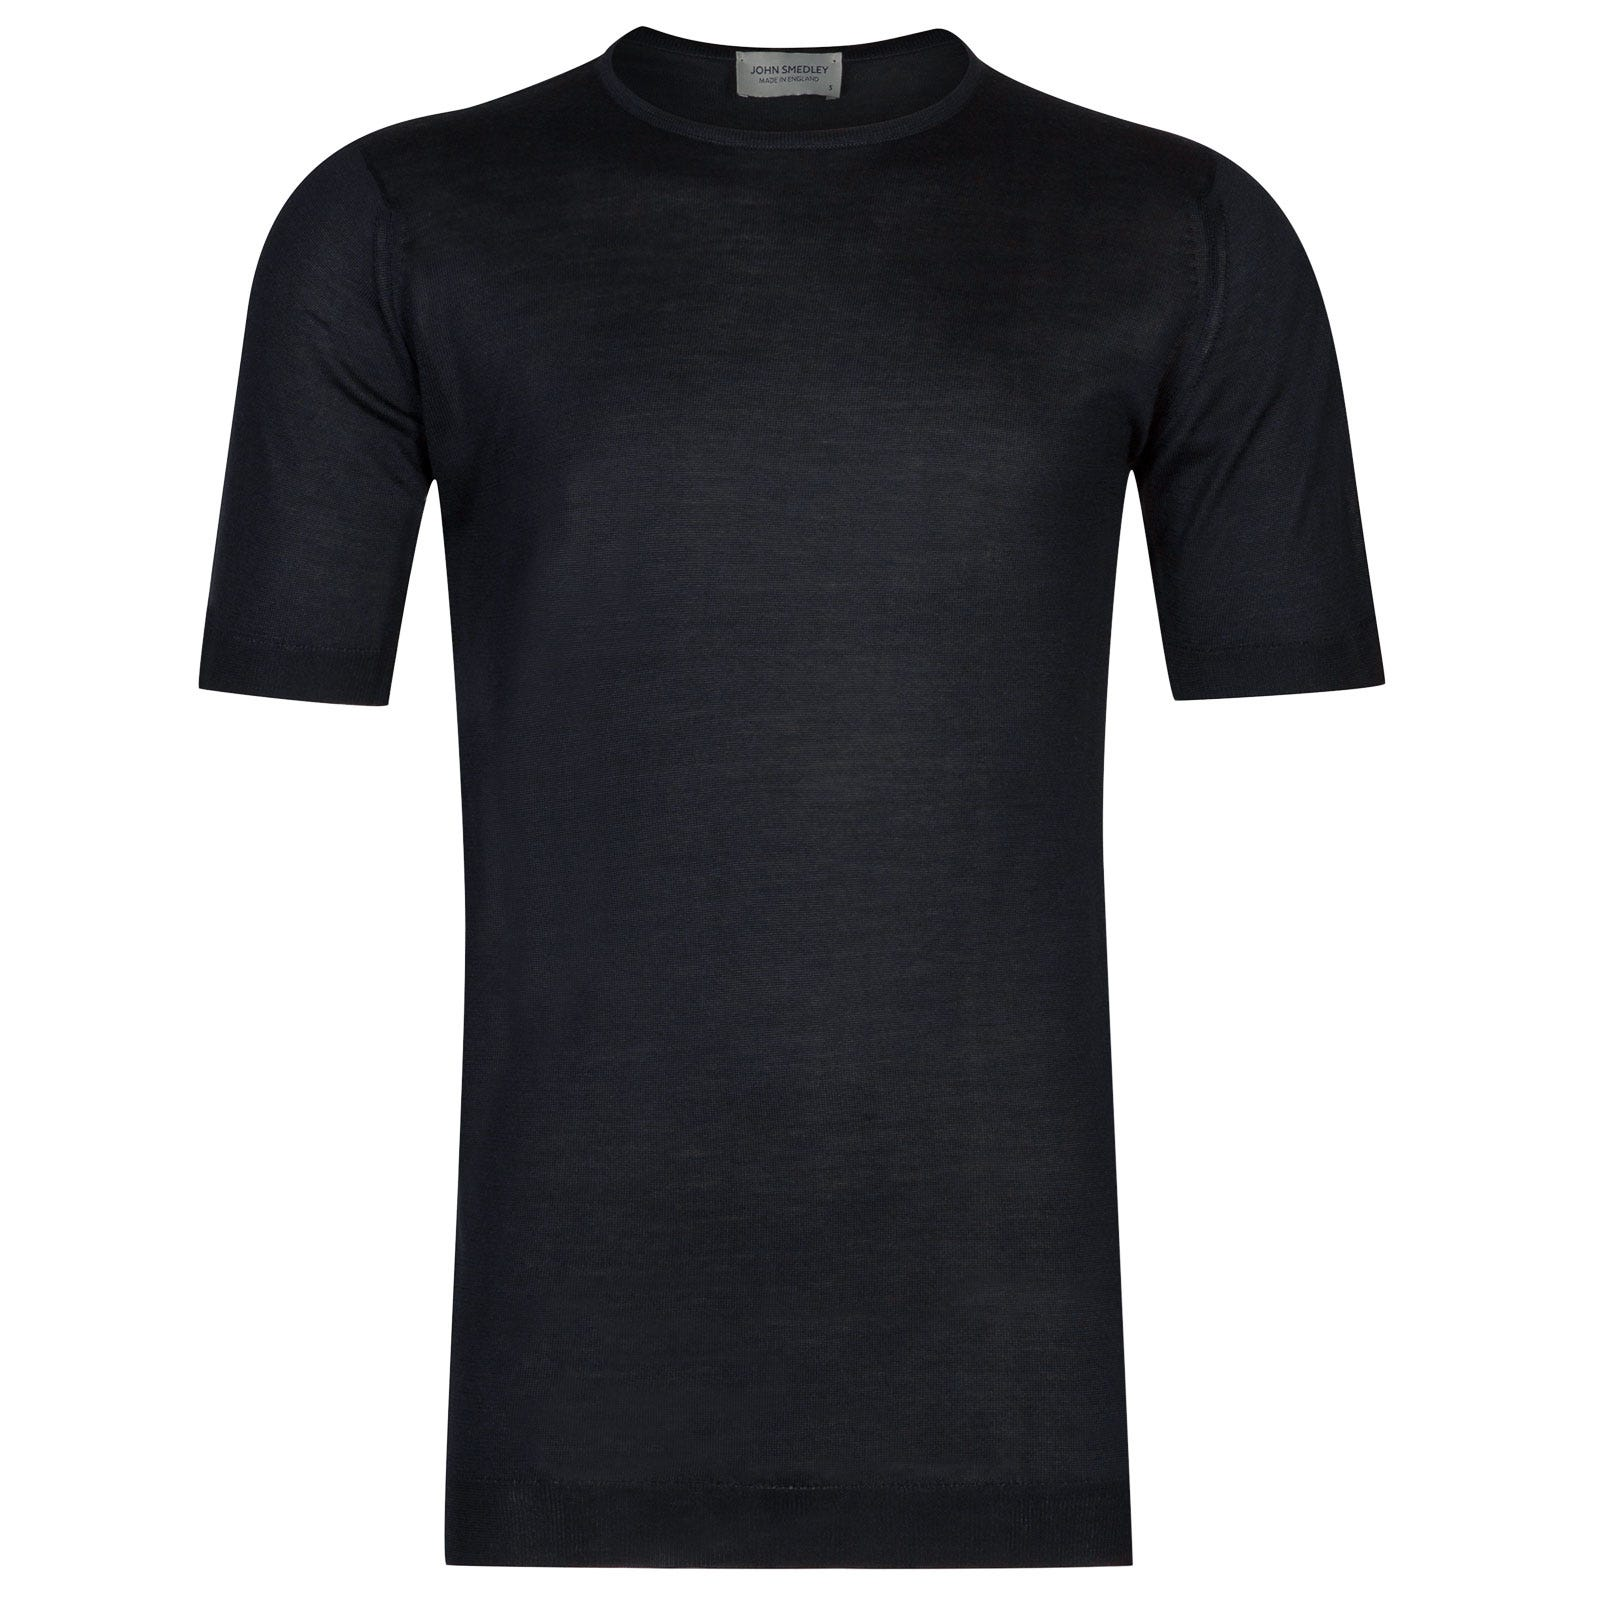 John Smedley stowe Pure Silk T-Shirt in Midnight-M